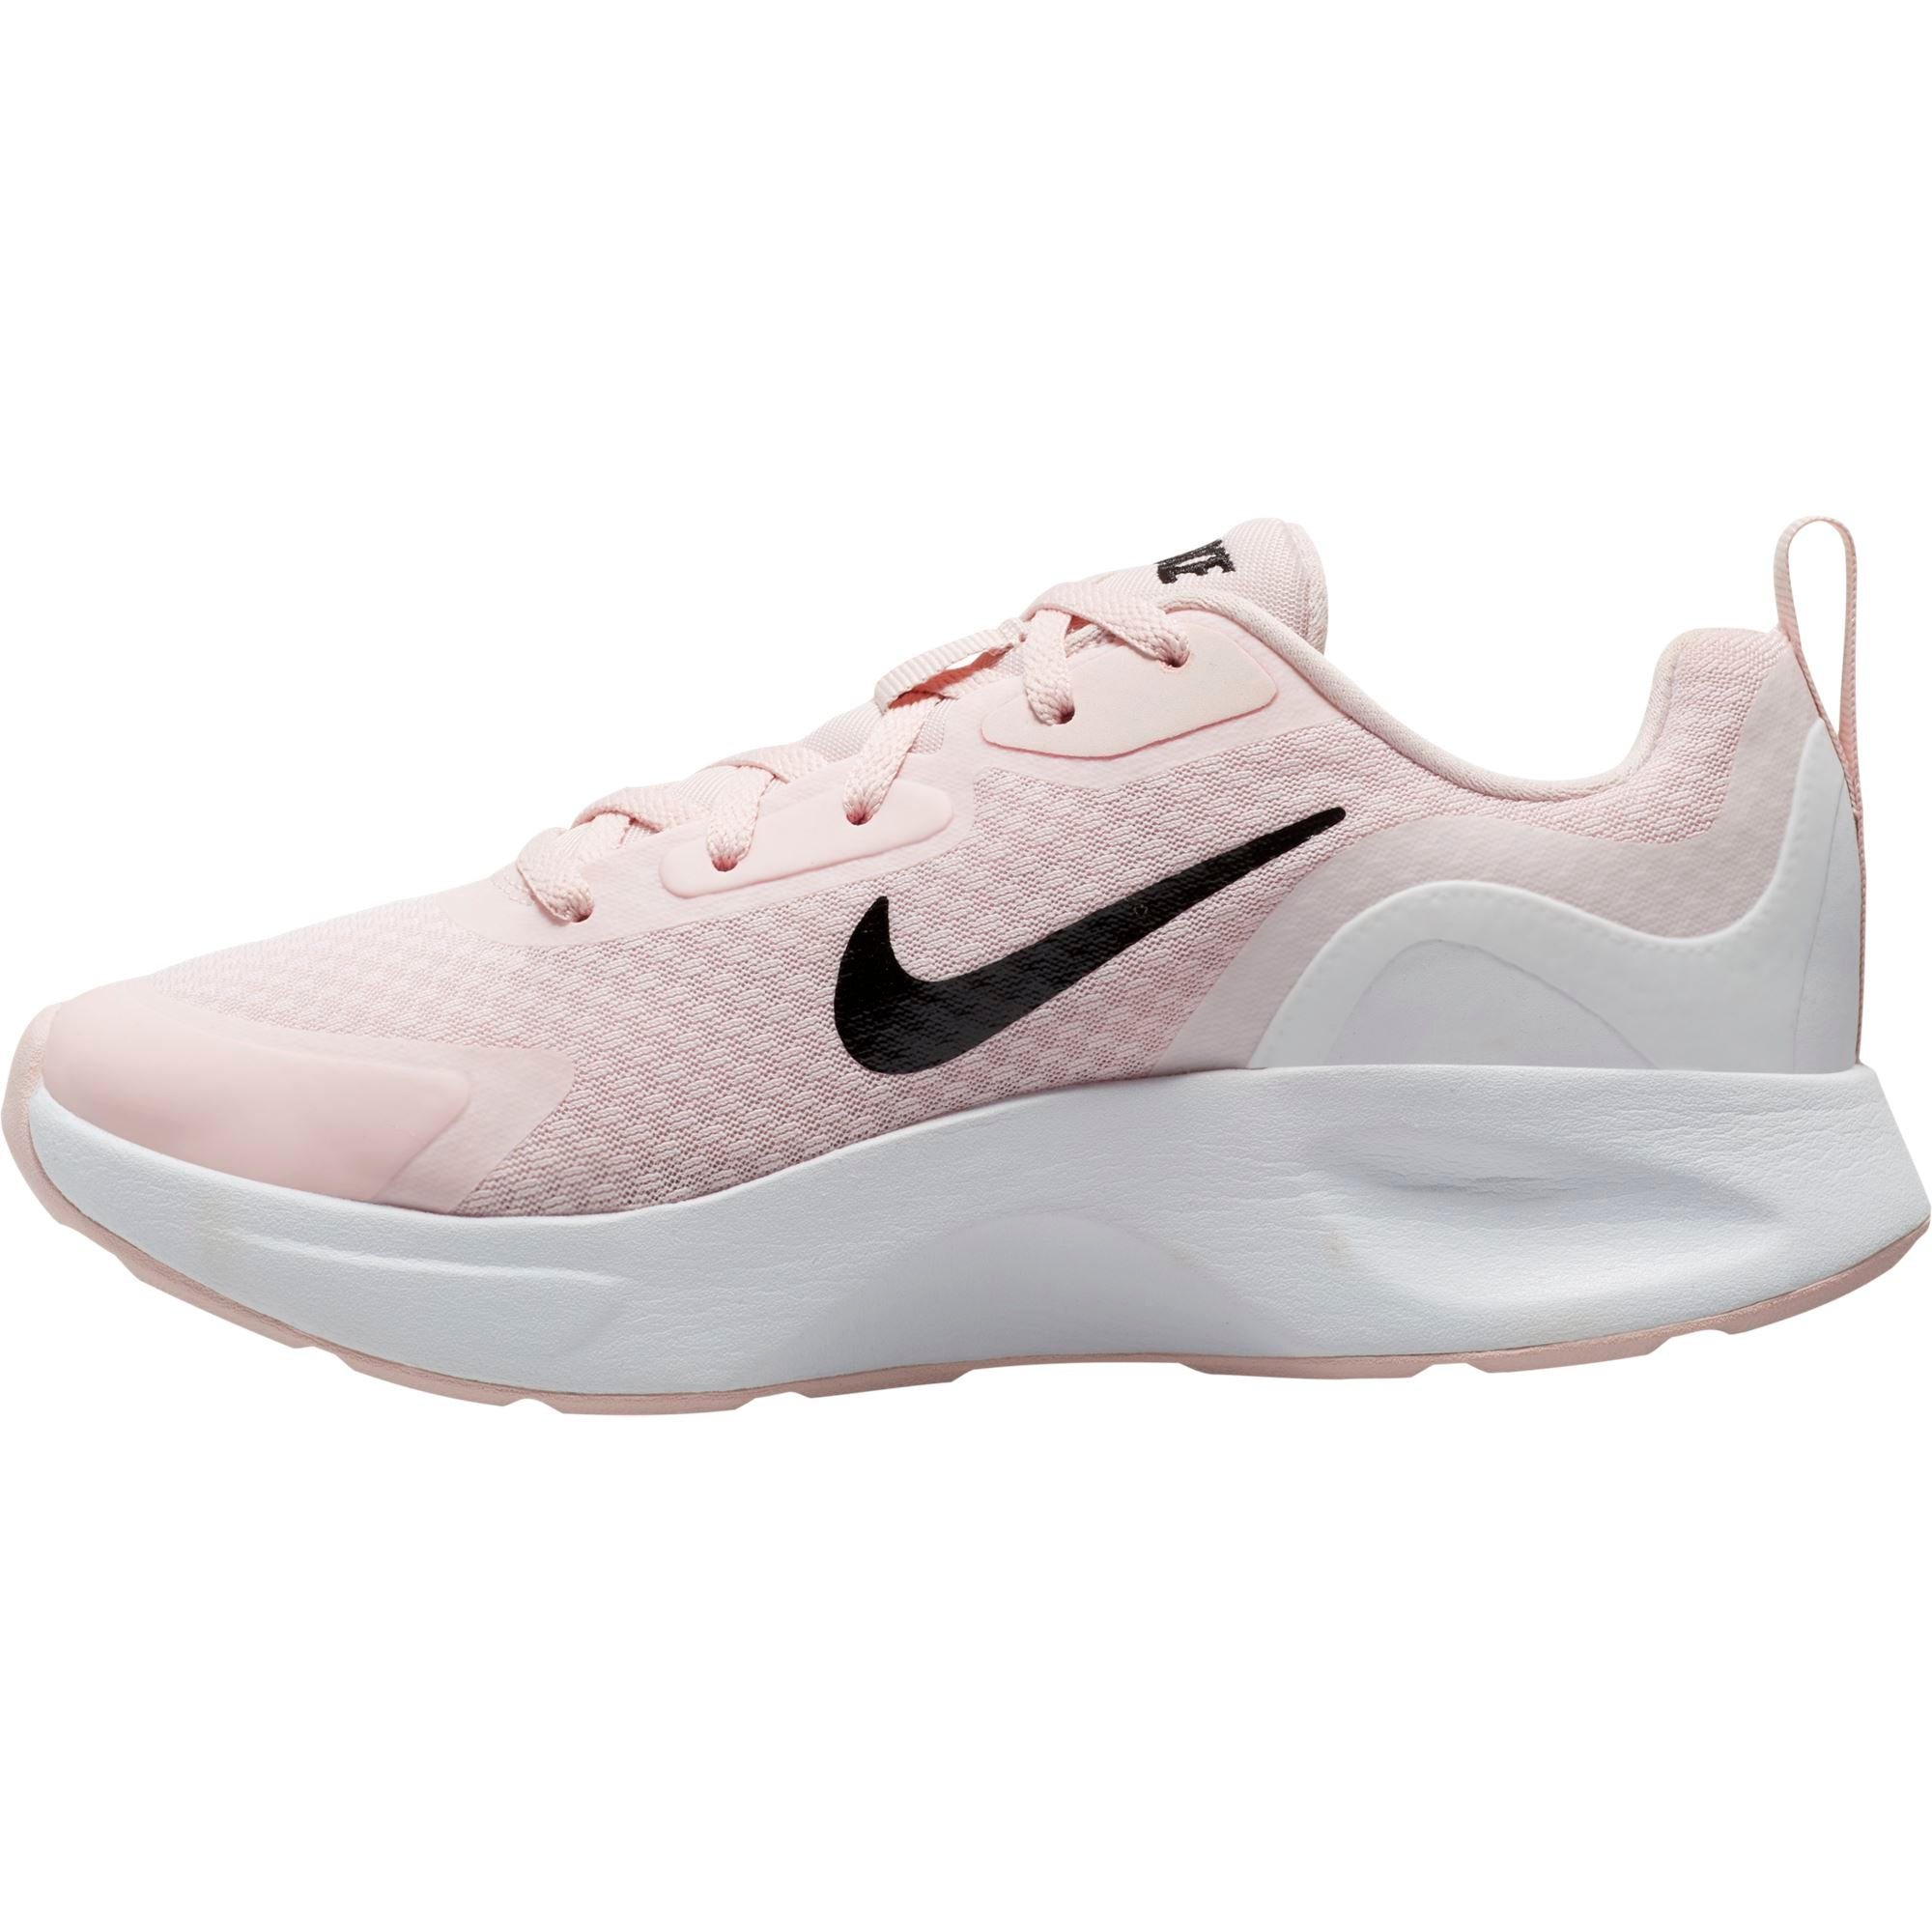 Nike Womens Wearallday - Barely Rose/Black-White SP-Footwear-Womens Nike